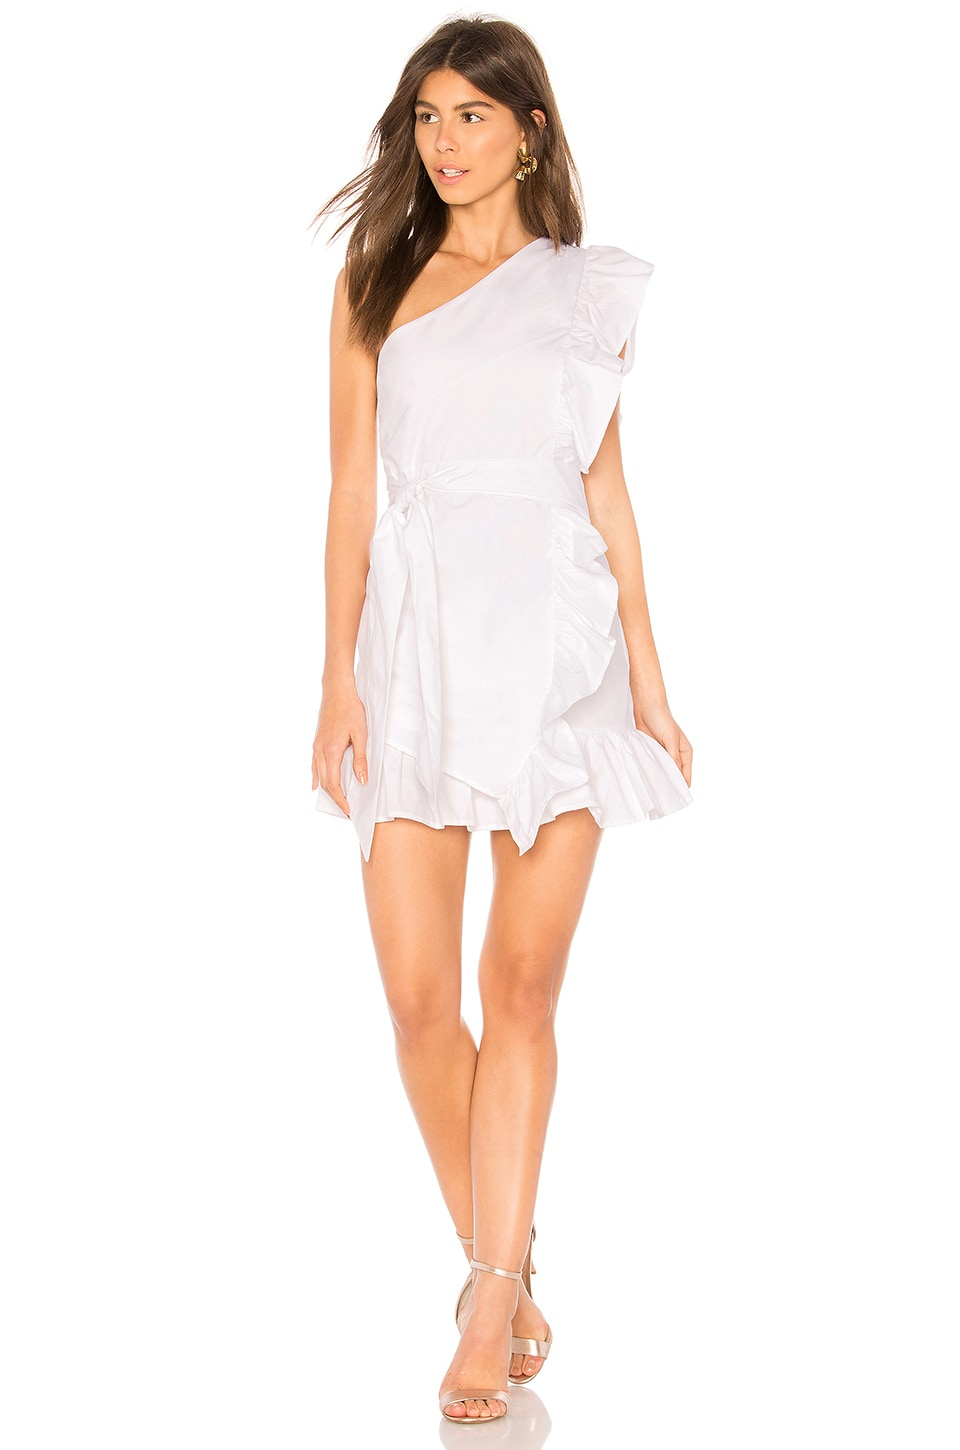 LIONESS Sliding Doors Ruffle Dress in White